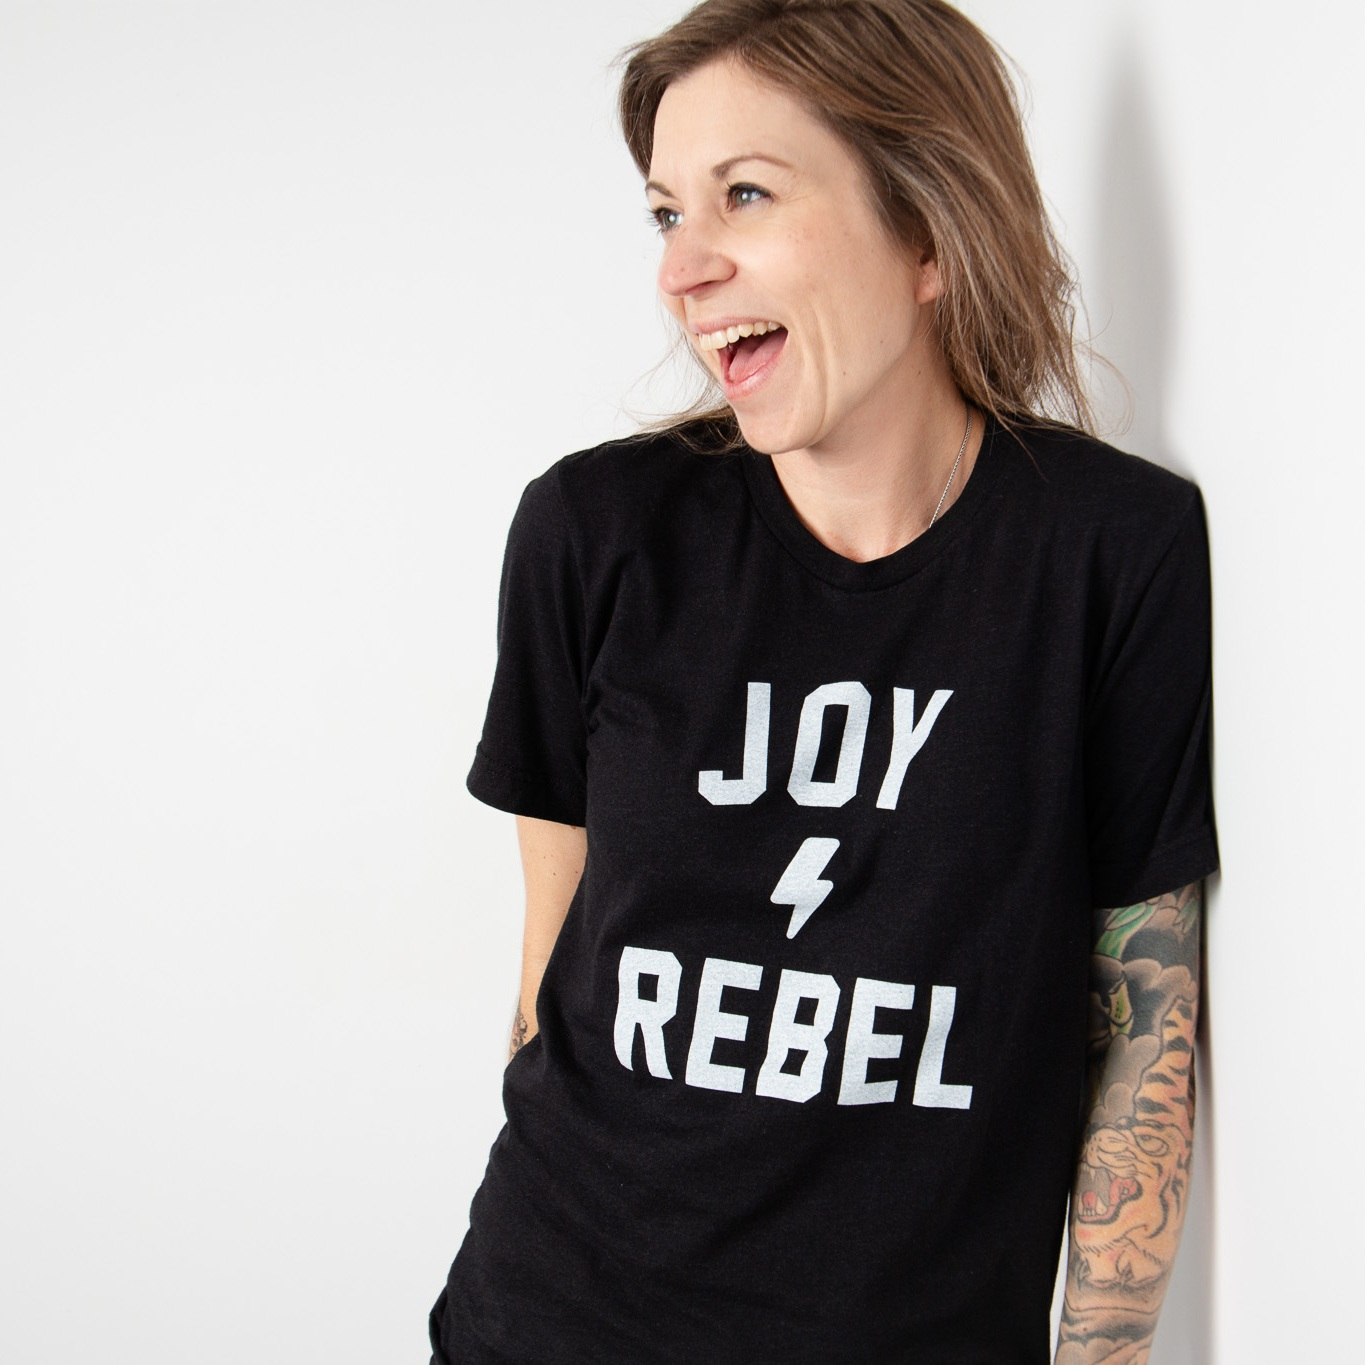 joy rebel erin valkner photography new braunfels texas